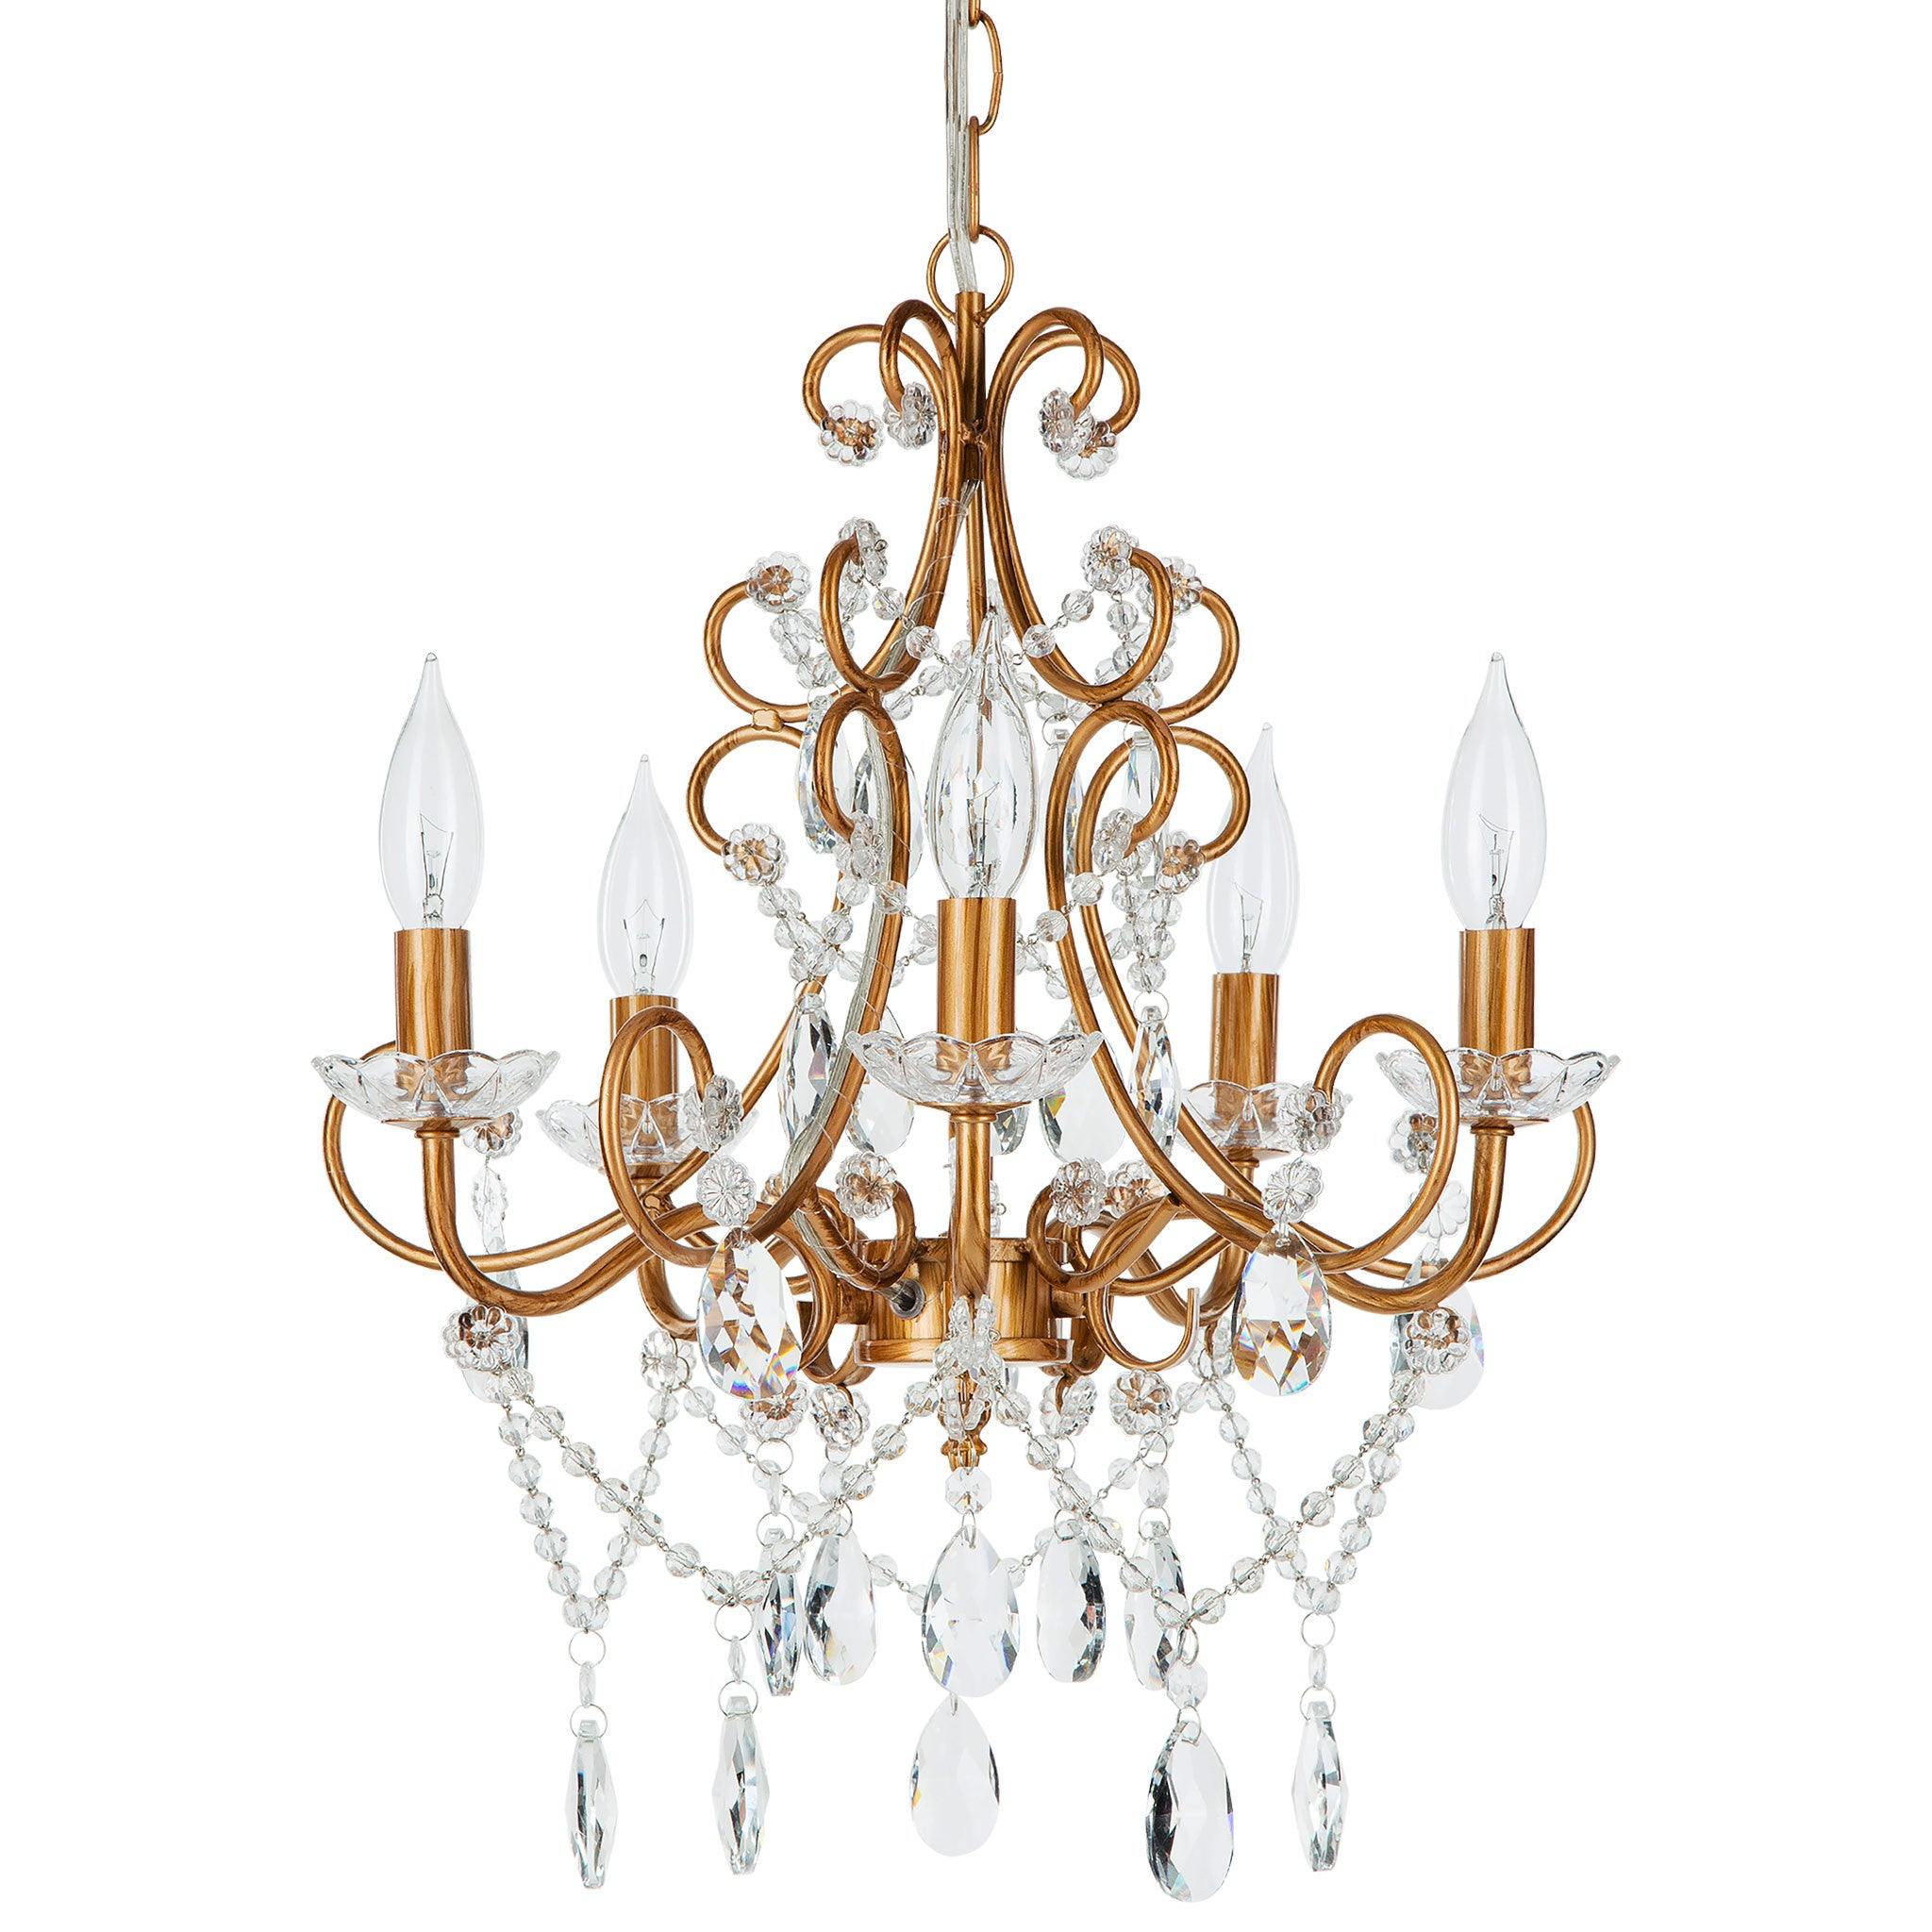 Amalfi Decor 5 Light Classic Crystal Plug-In Chandelier (Gold) | Wrought Iron Frame with Glass Crystals